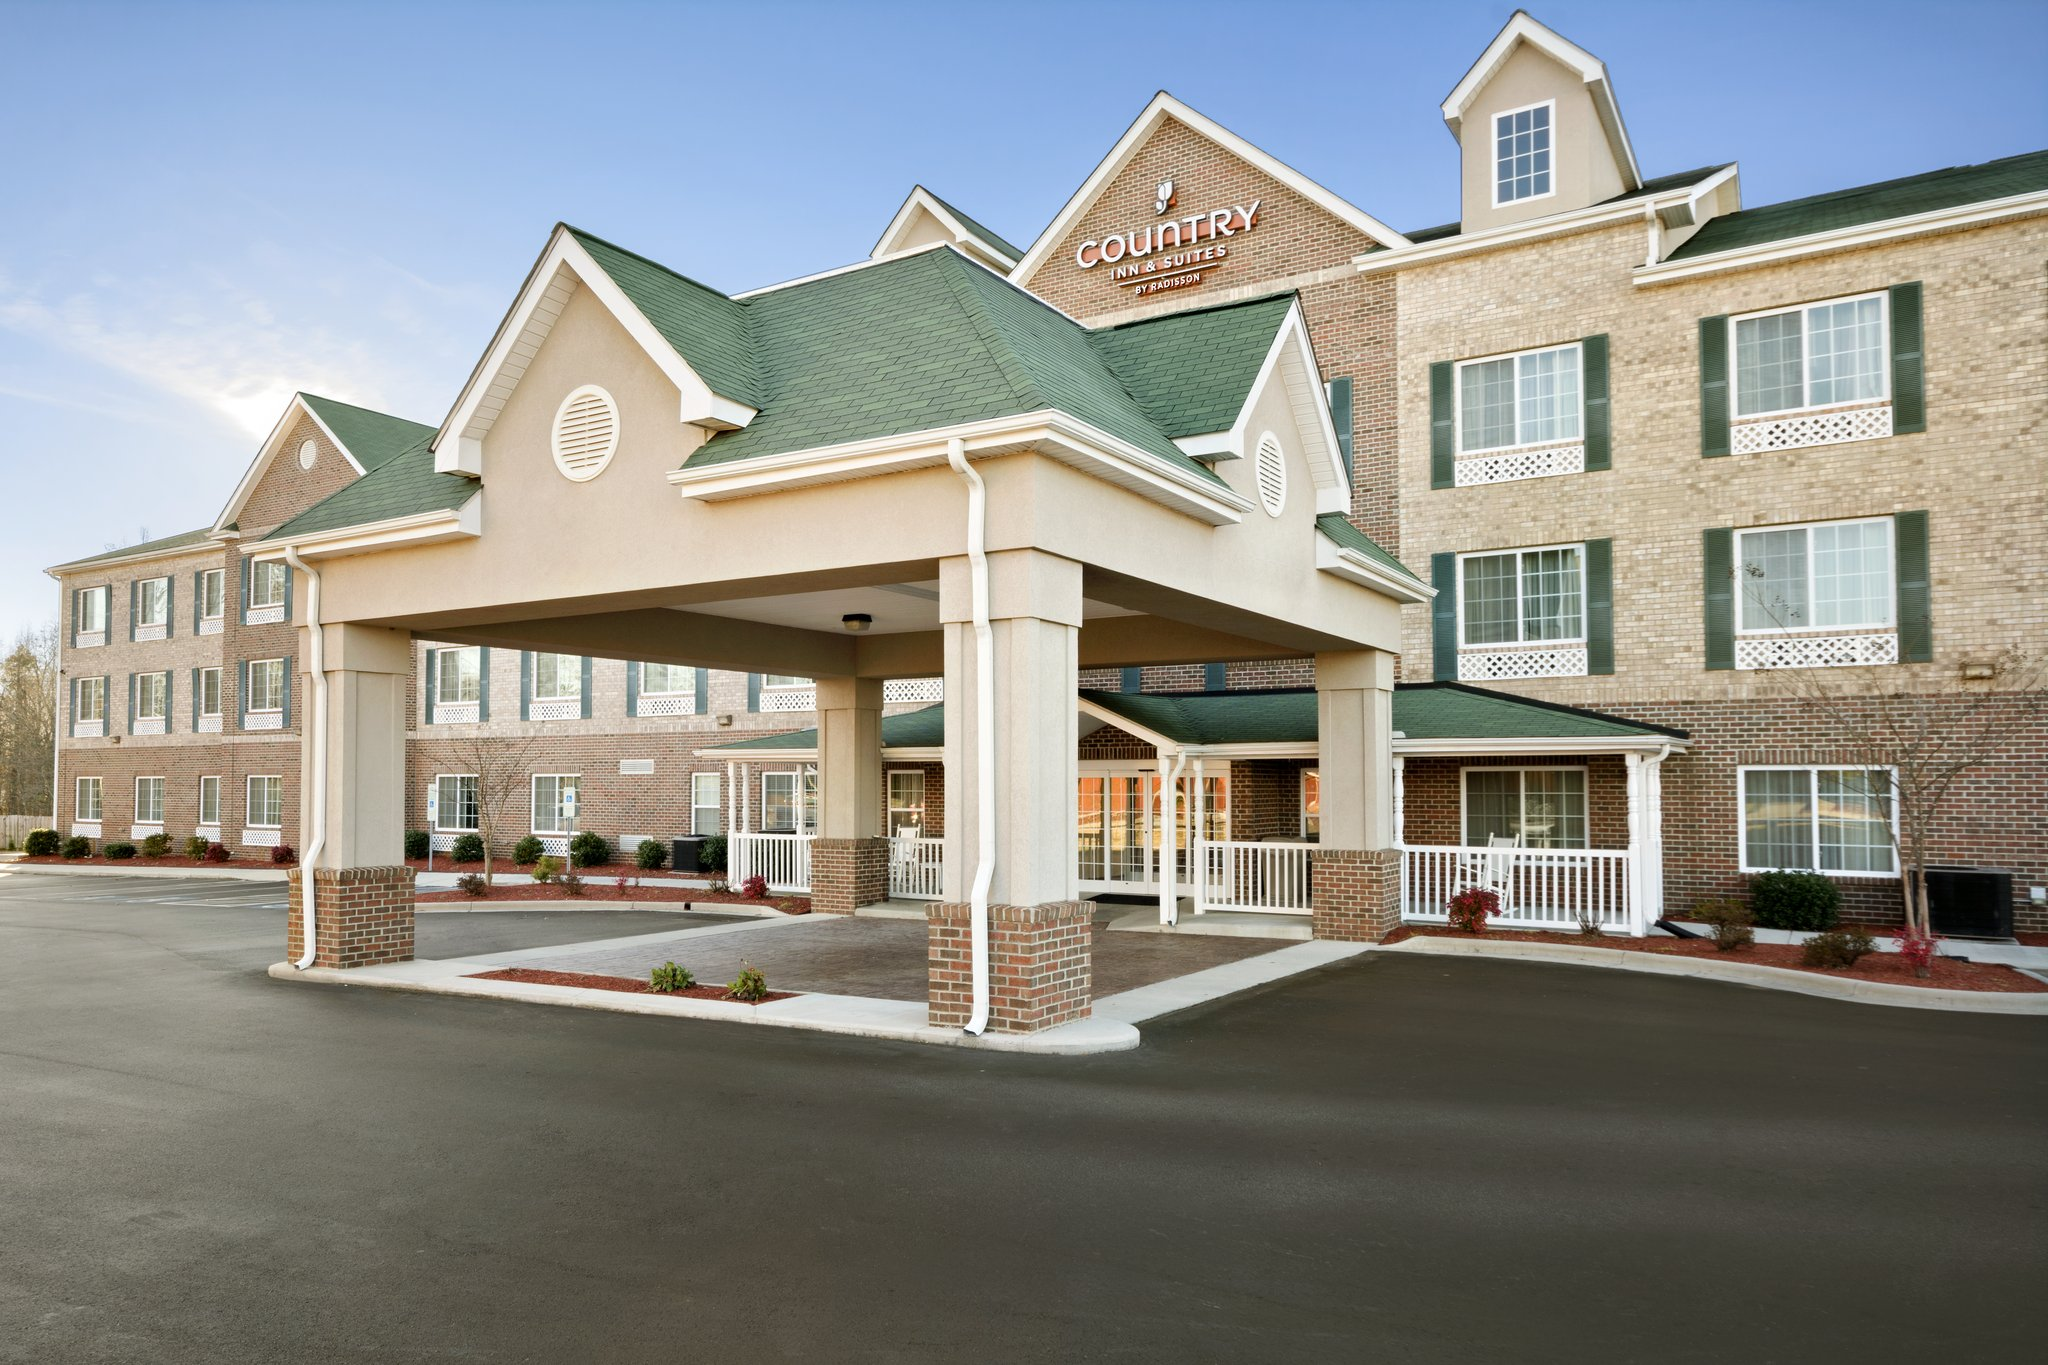 Country Inn & Suites, High Point NC